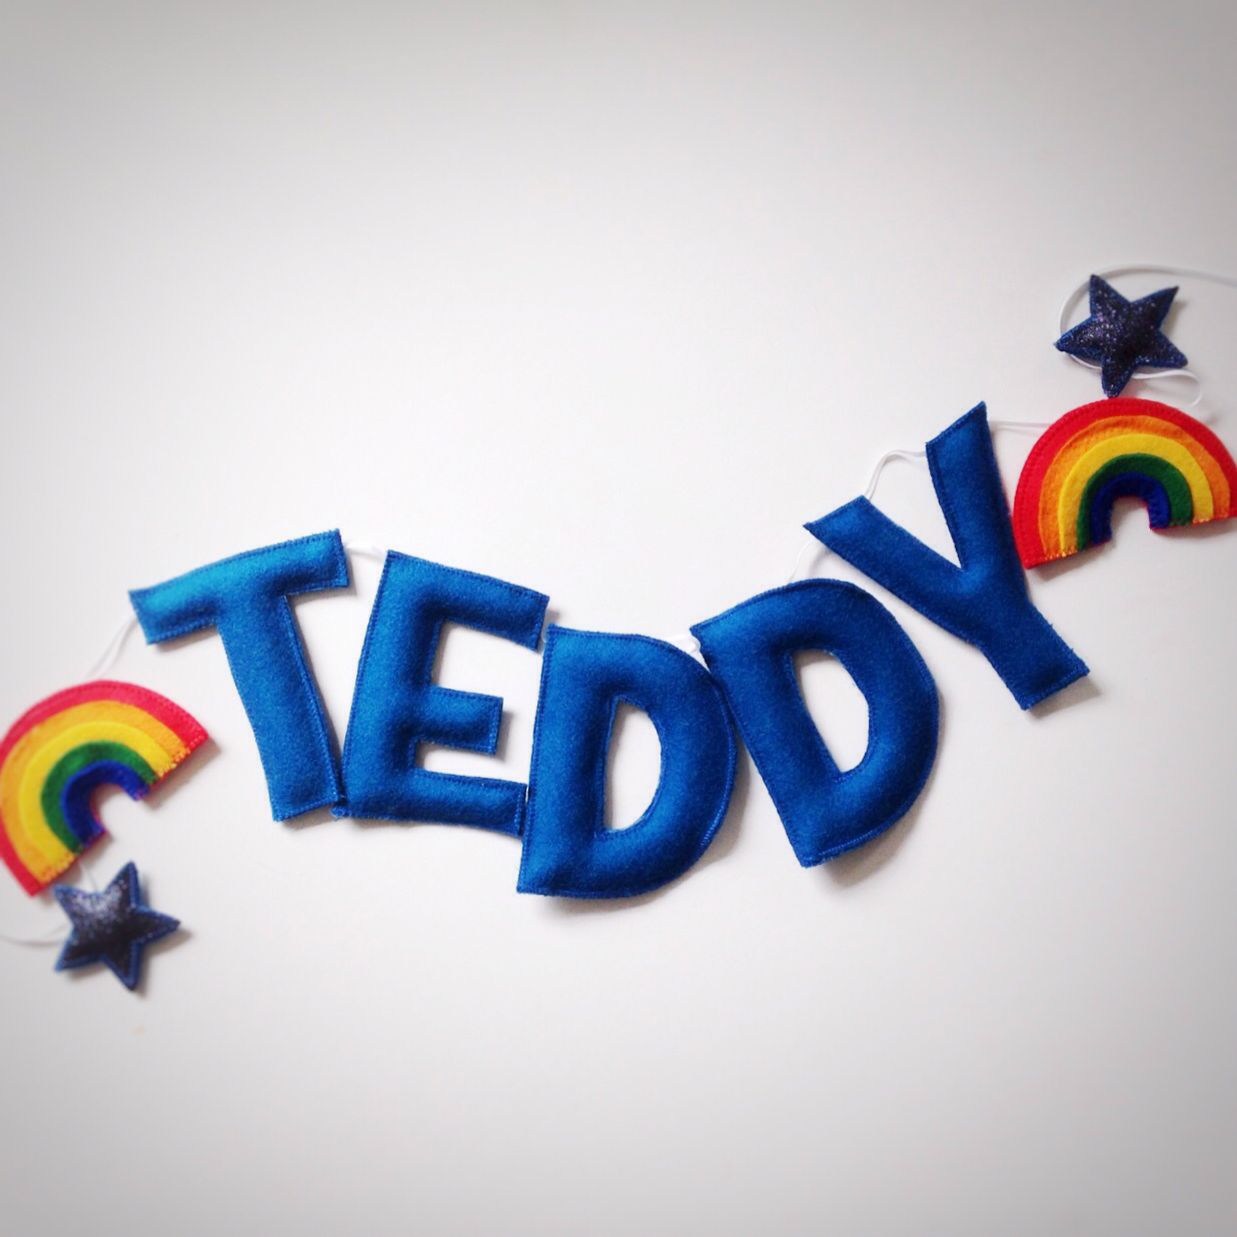 A felt and glitter personalised name garland with rainbows and stars. Bright rainbow colours and teal blue felt, by the secretcrafthouse.com